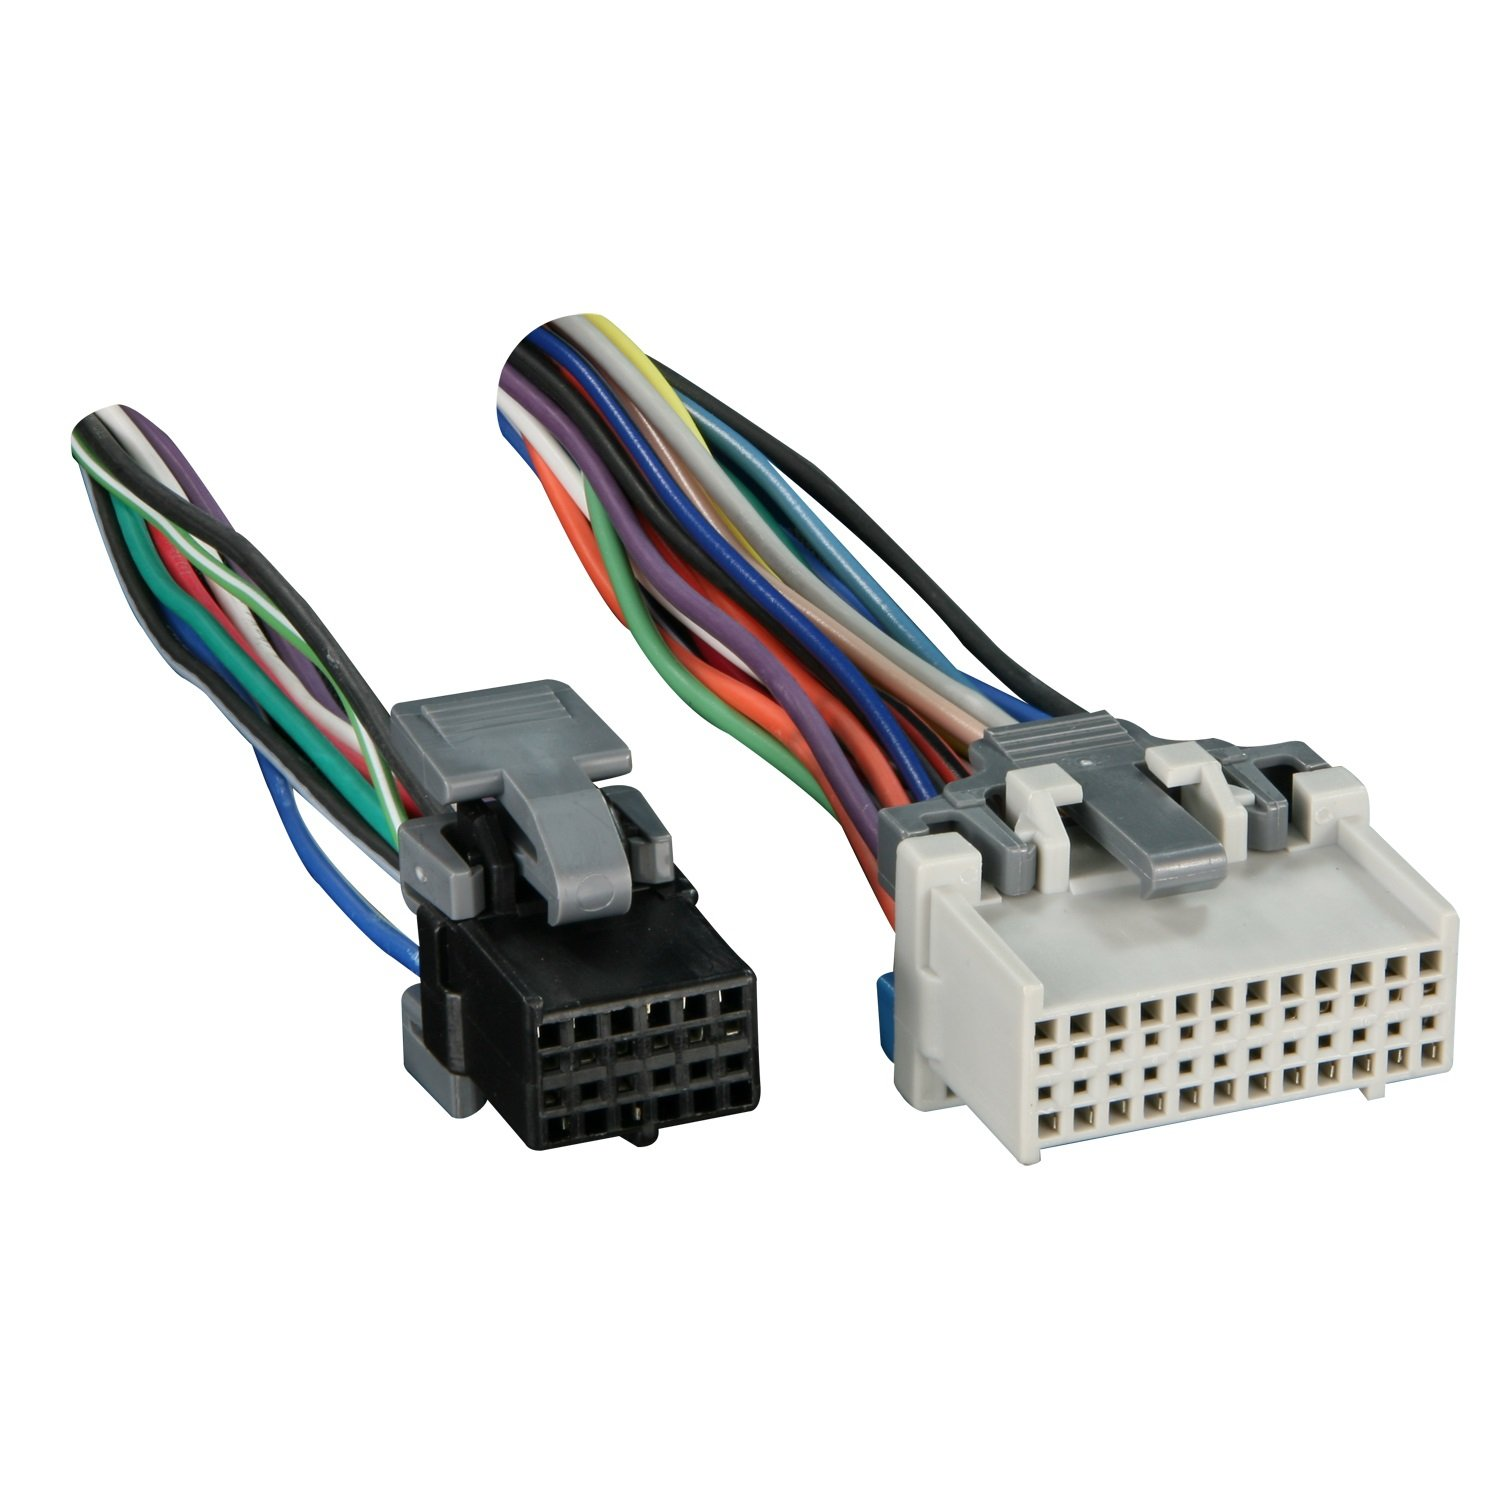 711log4bdML._SL1500_ amazon com metra turbowires 71 2003 1 wiring harness car electronics how much does it cost to replace a wiring harness at webbmarketing.co